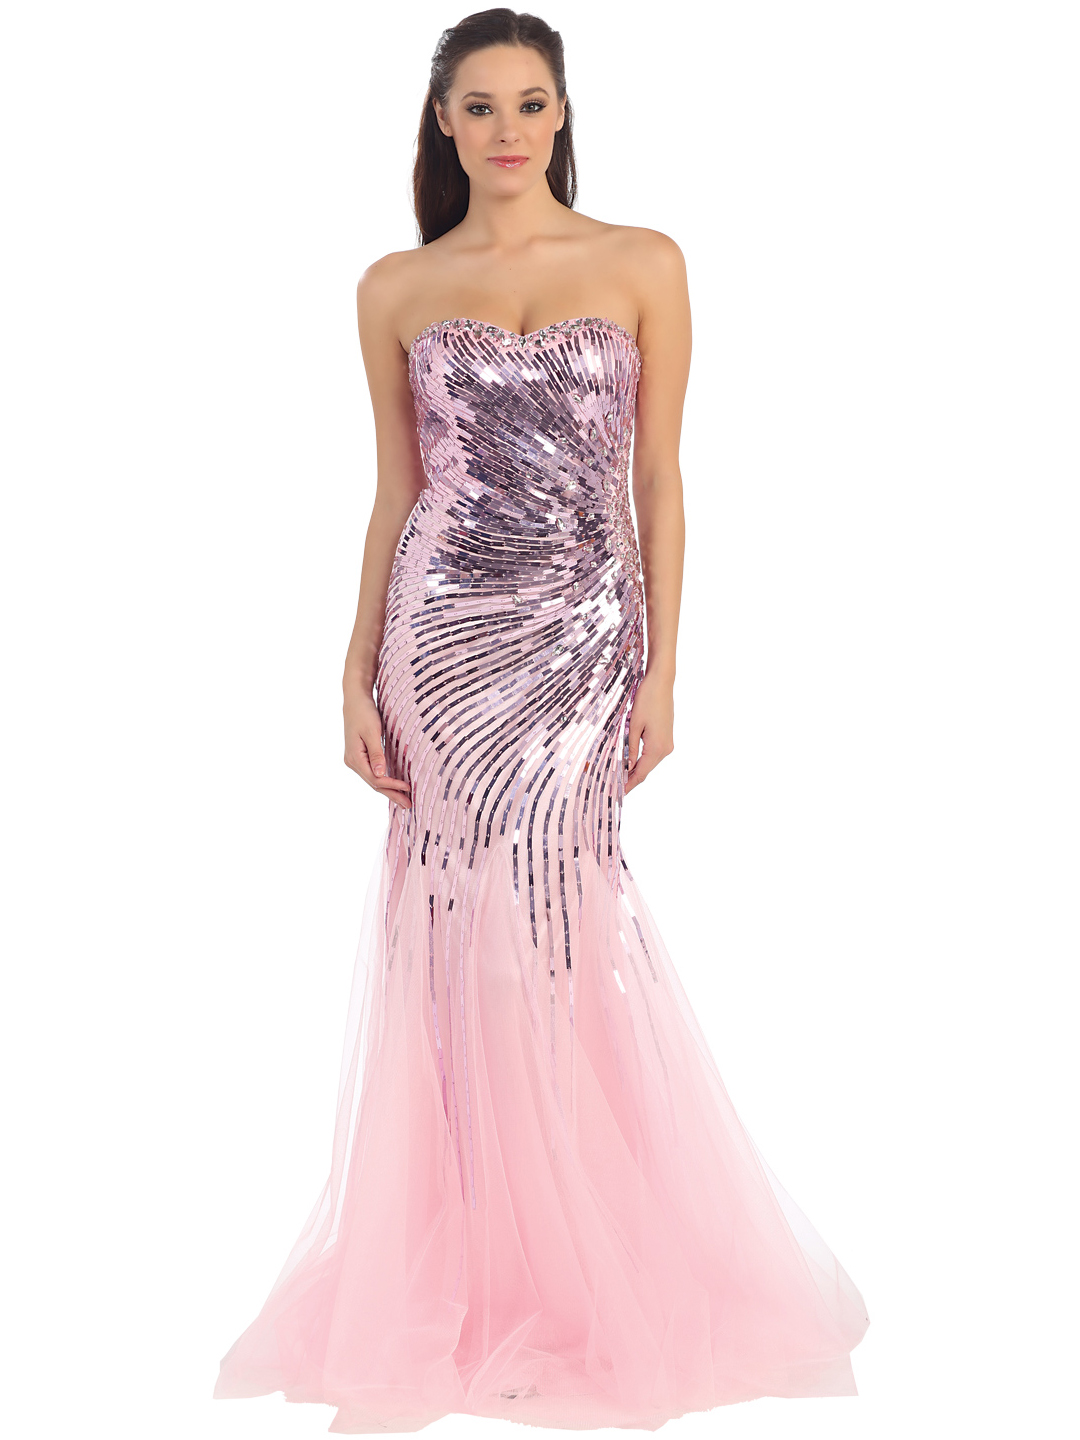 Strapless Sweetheart Sequins Mesh-Overlay Prom Dress | Sung ...